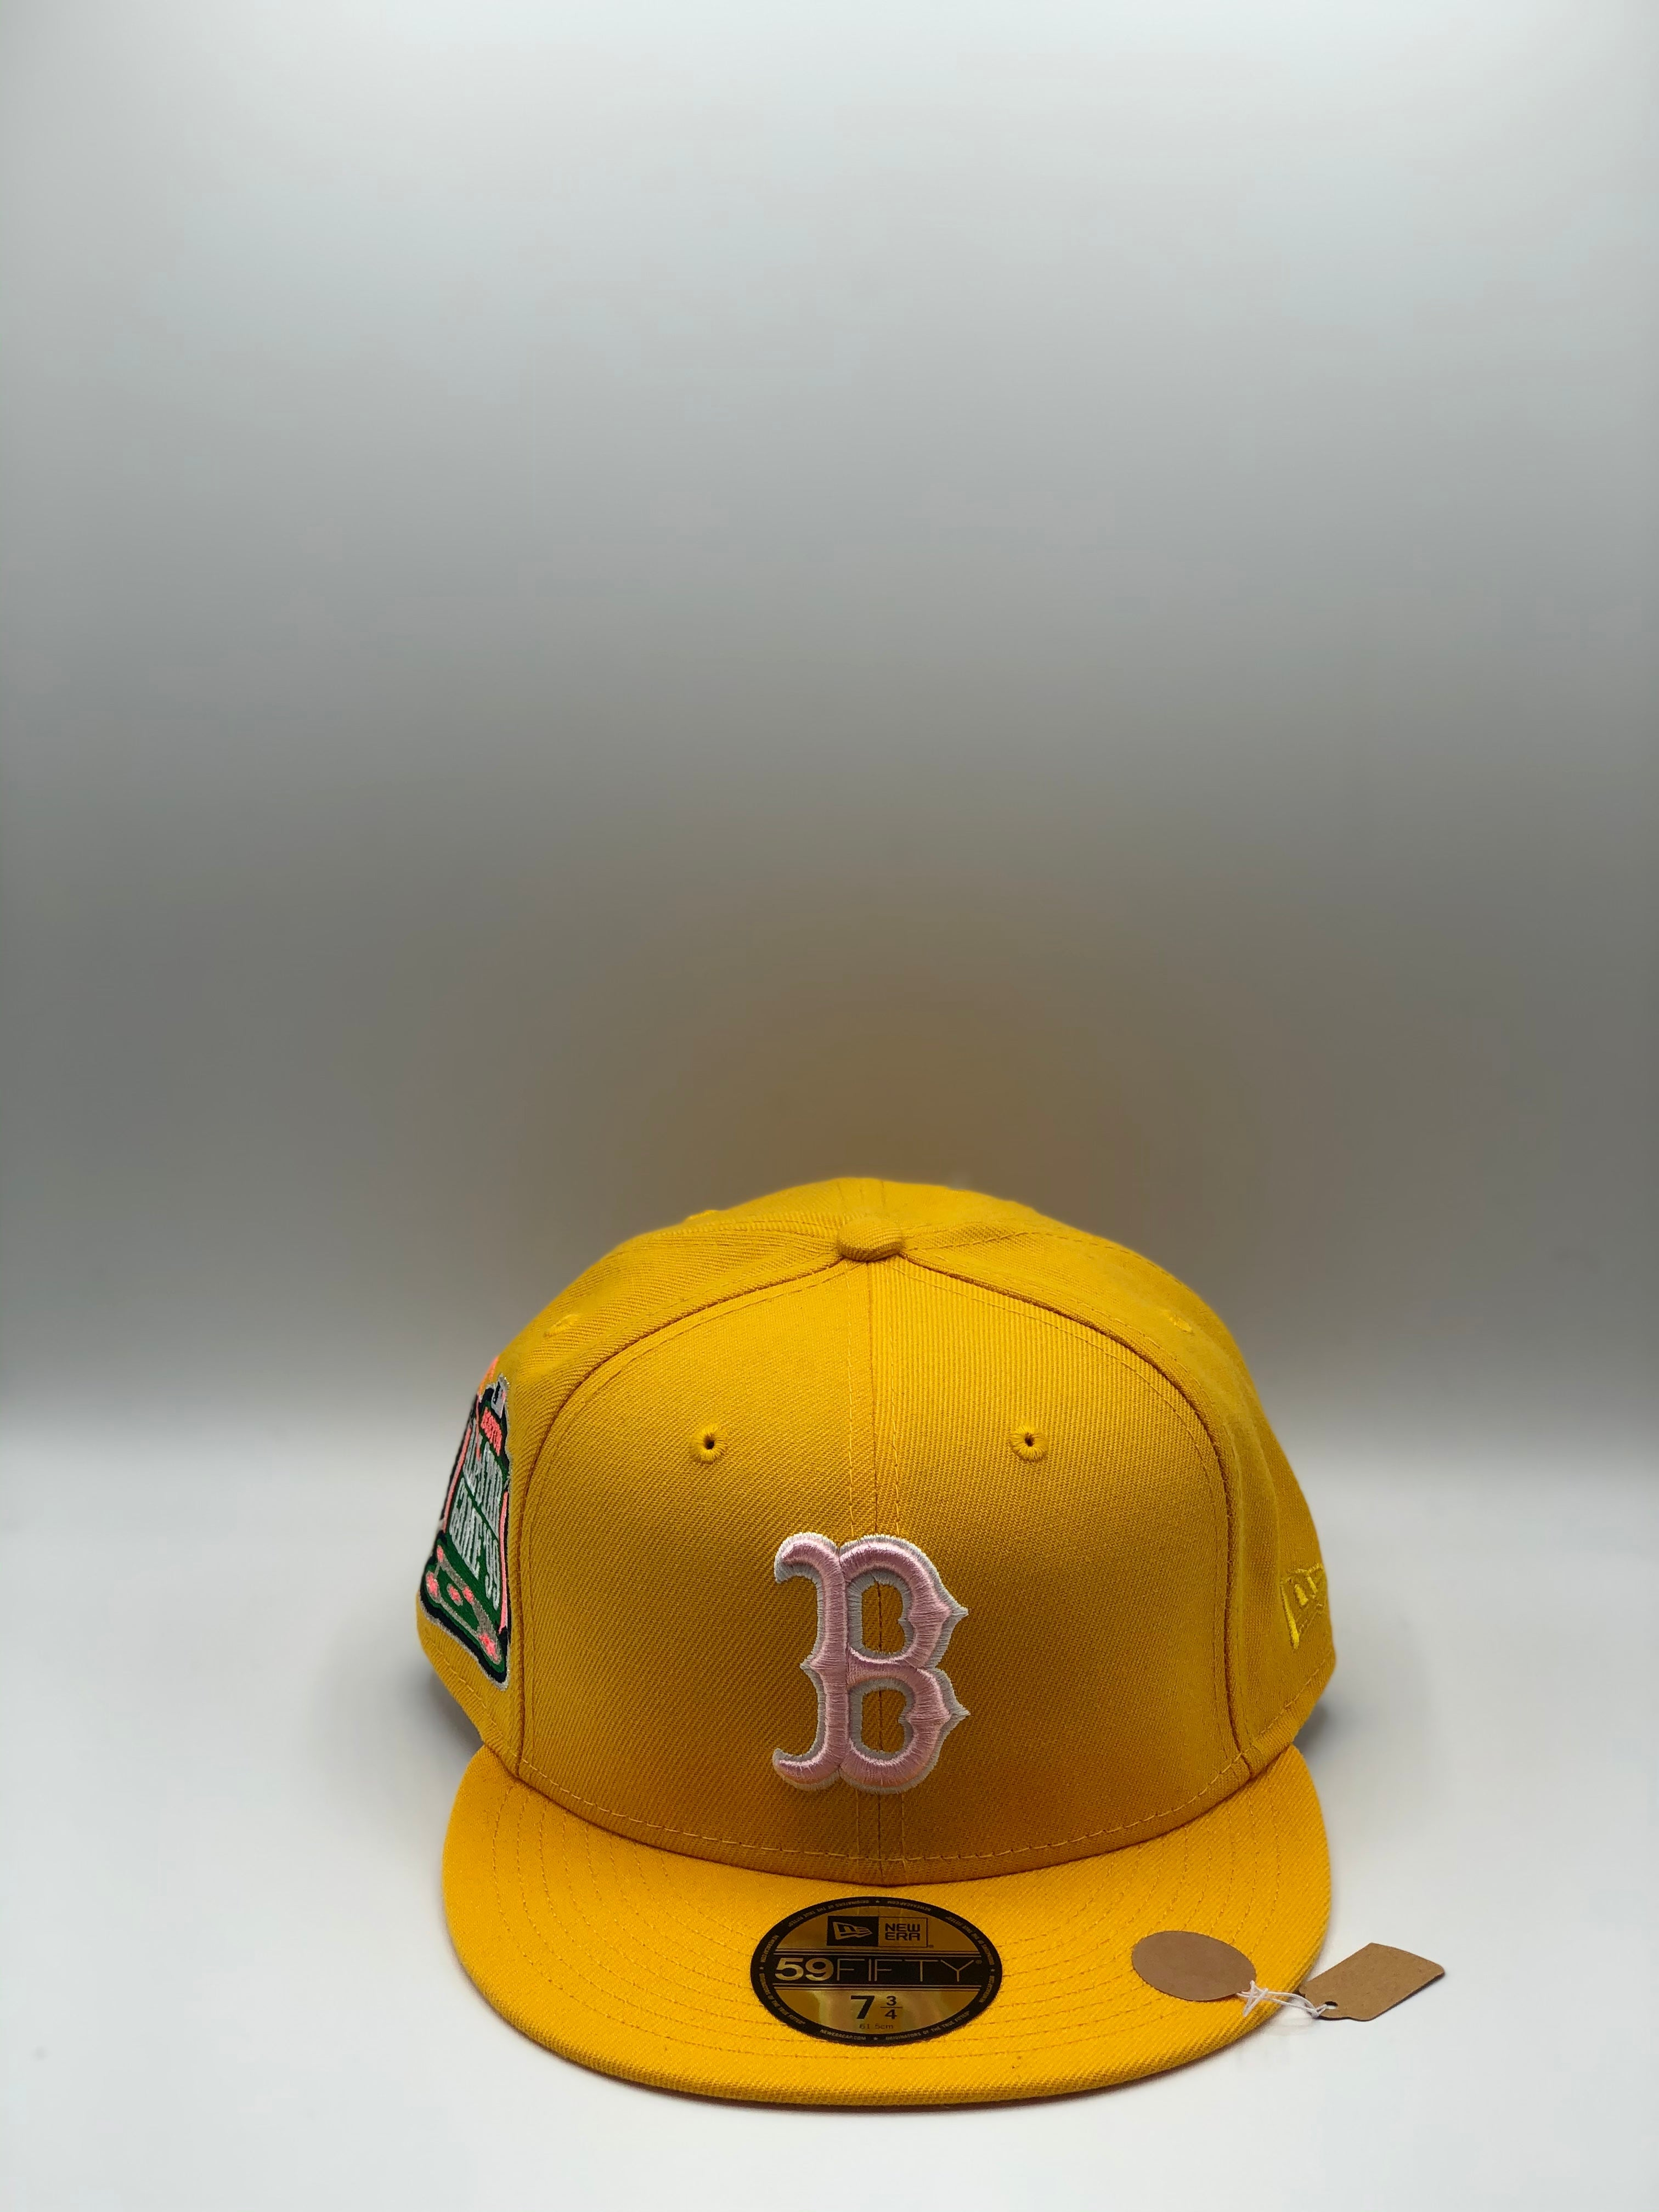 BOSTON RED SOX x 1999 ASG NEW ERA 59FIFTY (PINK UV)